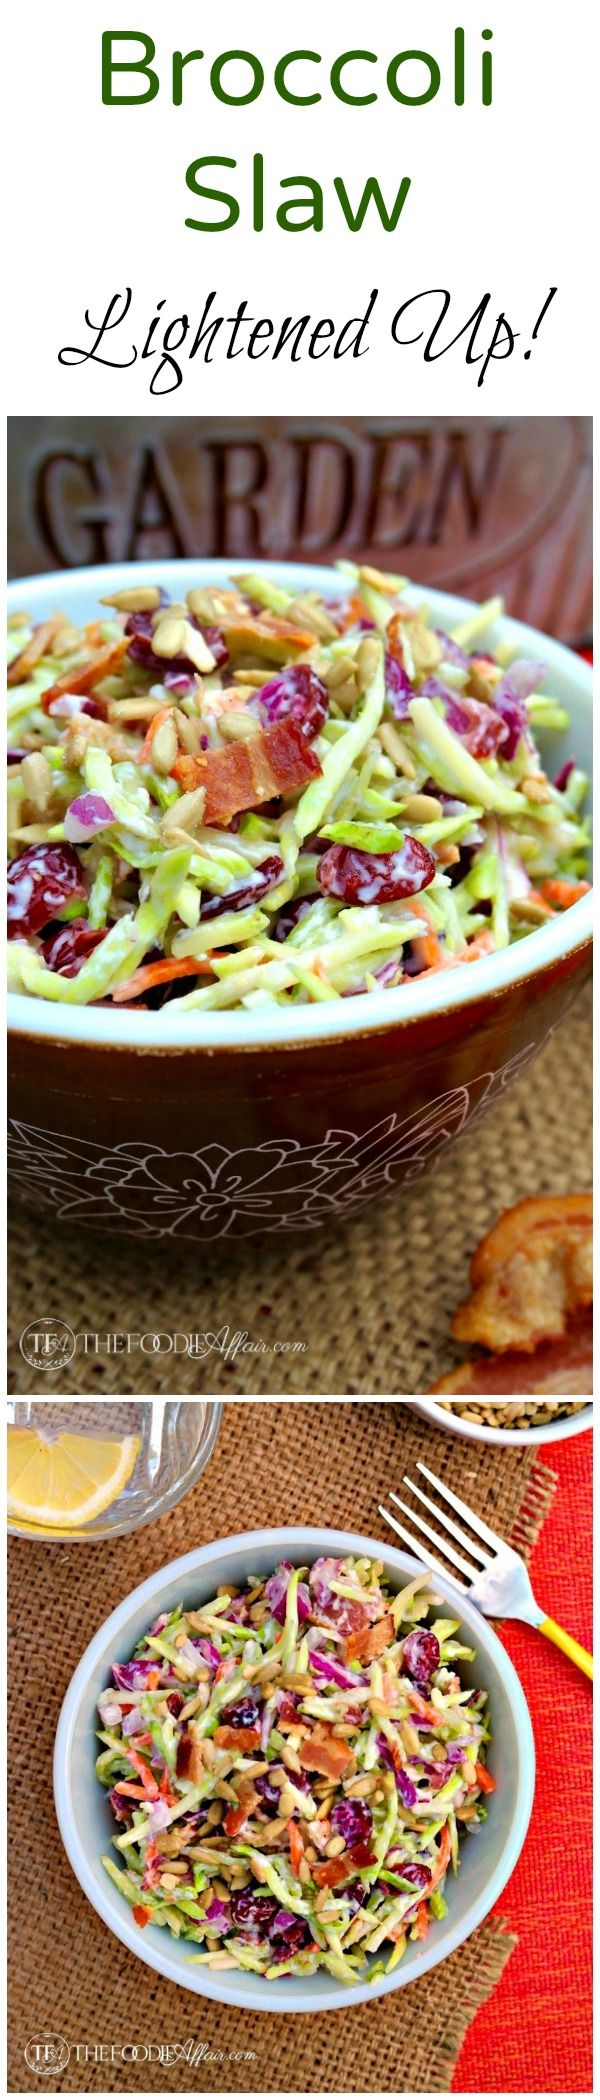 This favorite potluck broccoli salad got a makeover! Lightened up dressing and instead of using broccoli florets, shredded slaw is used in this dish! The Foodie Affair #broccoli #slaw #salad #recipe